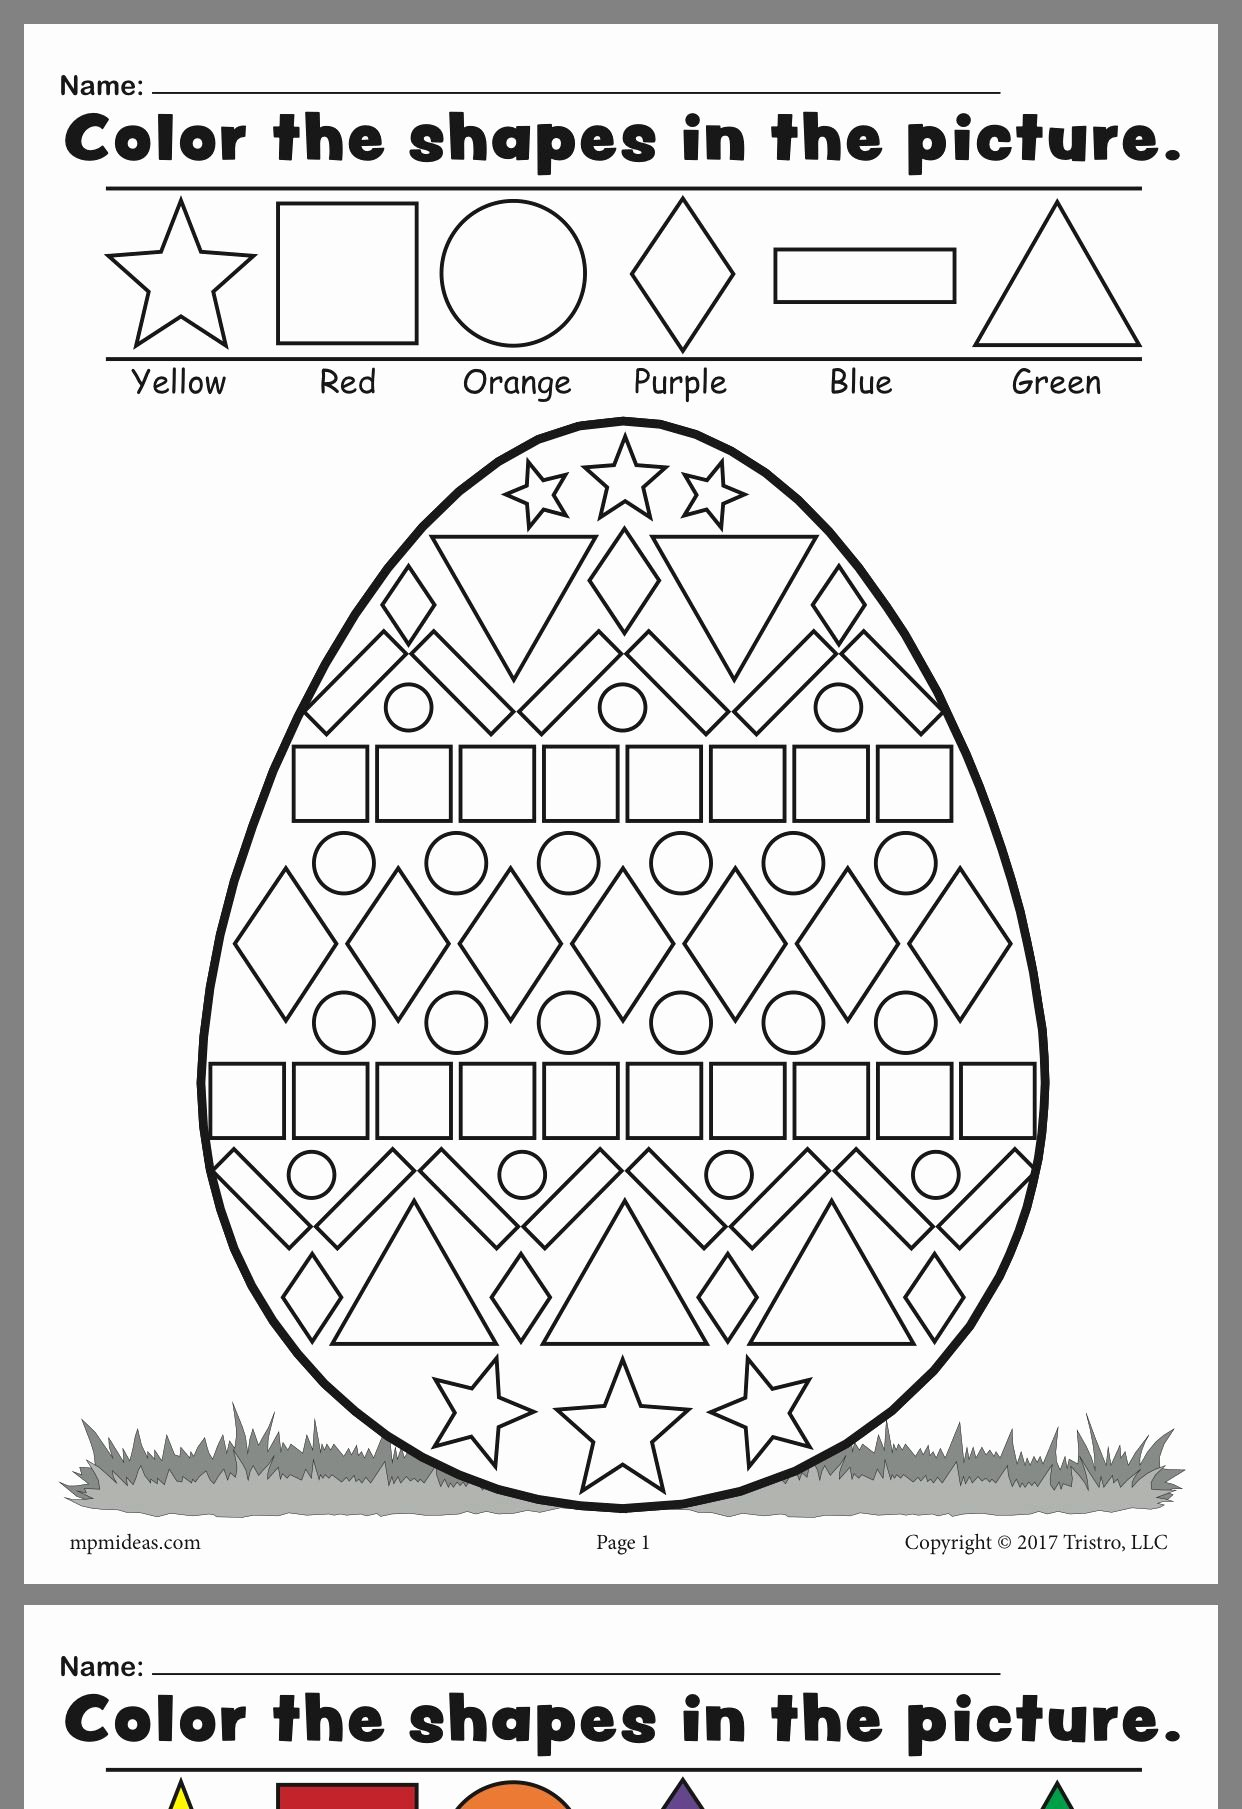 Free Print Worksheets for Preschoolers Fresh Worksheets Here Fun Worksheet that You Can and Print for